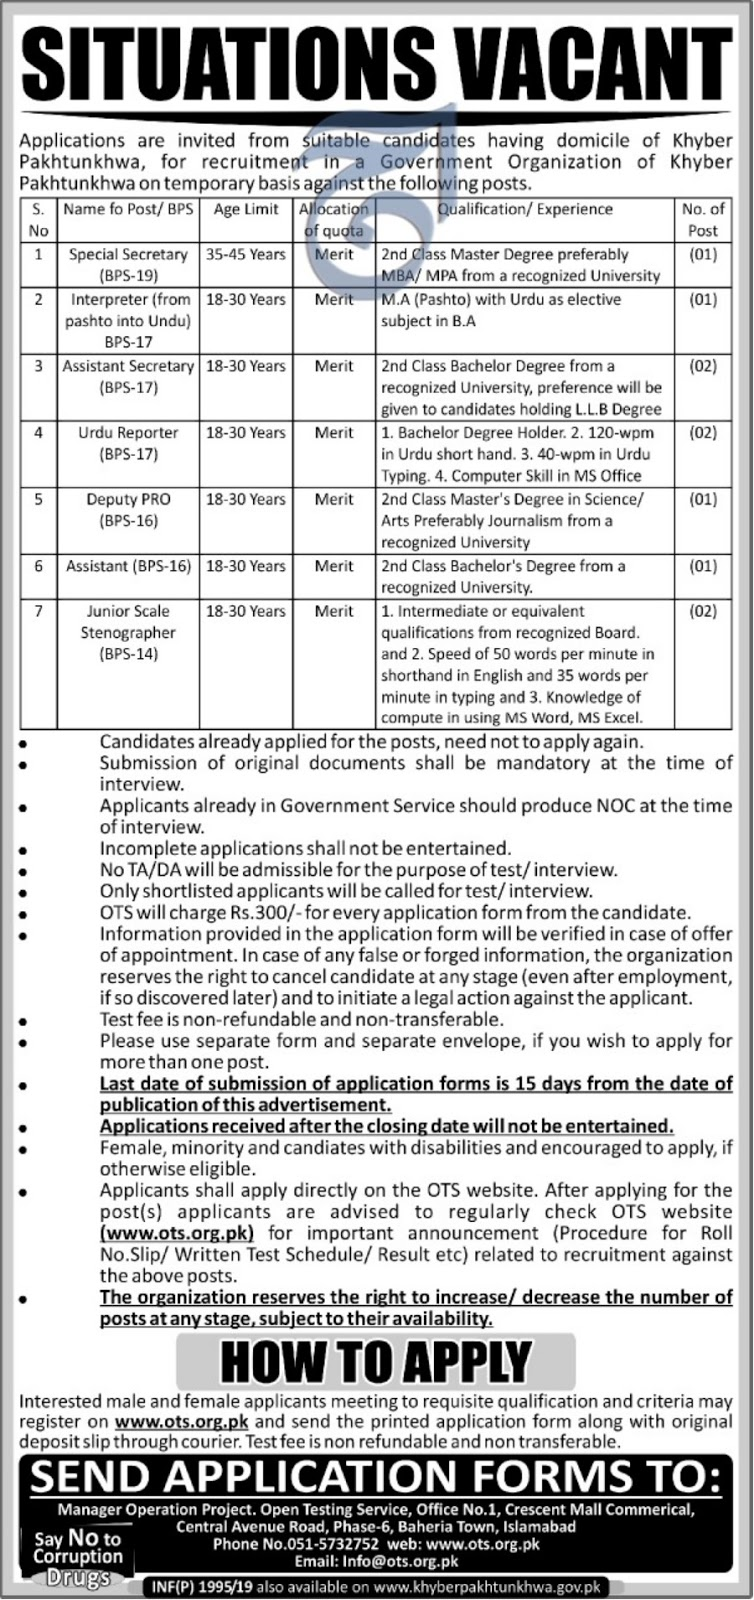 Govt Organization KPK Jobs 2019 Apply through OTS